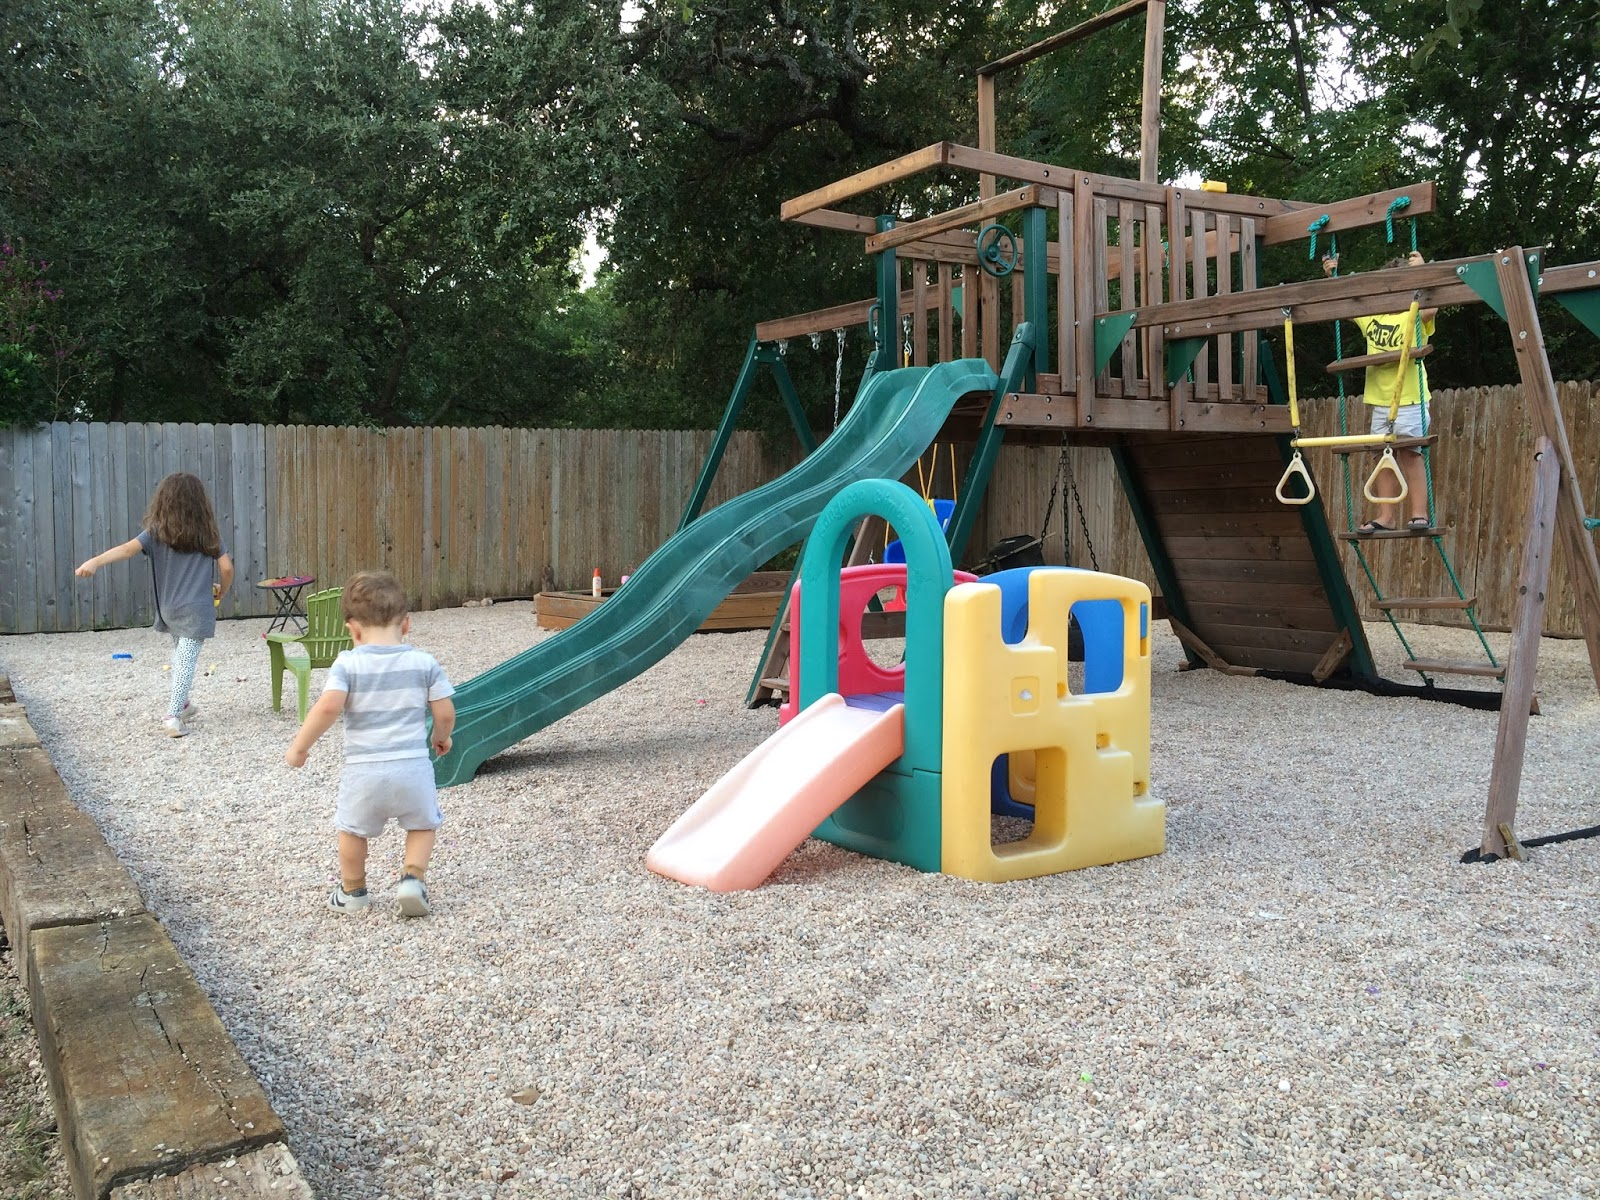 pea gravel playground backyard home tour tuesday the great outdoors kailo chic life jpg 1600x1200 playground pea gravel pea gravel wwwtopsimagescom